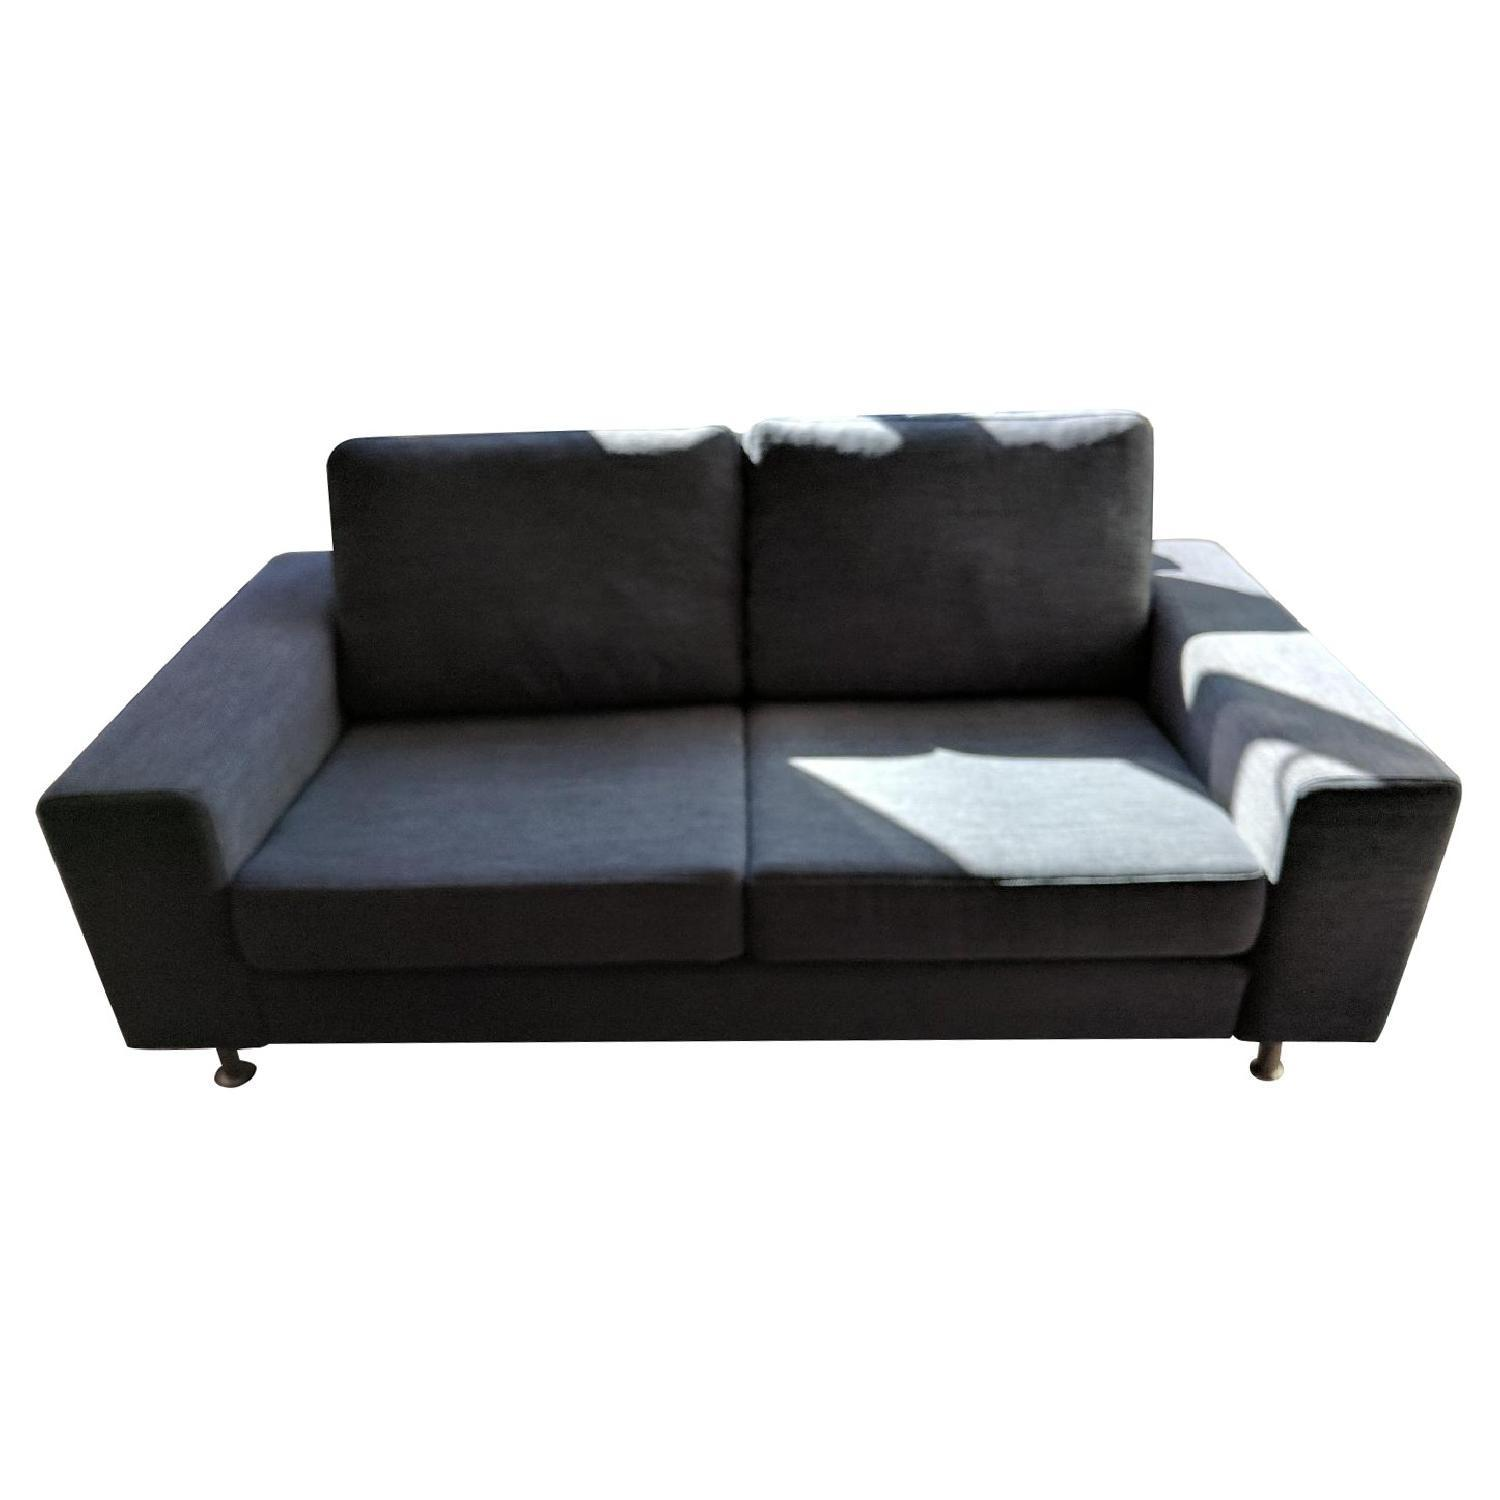 Boconcept indivi2 sofa in dark gray nani fabric aptdeco Boconcept sofa price